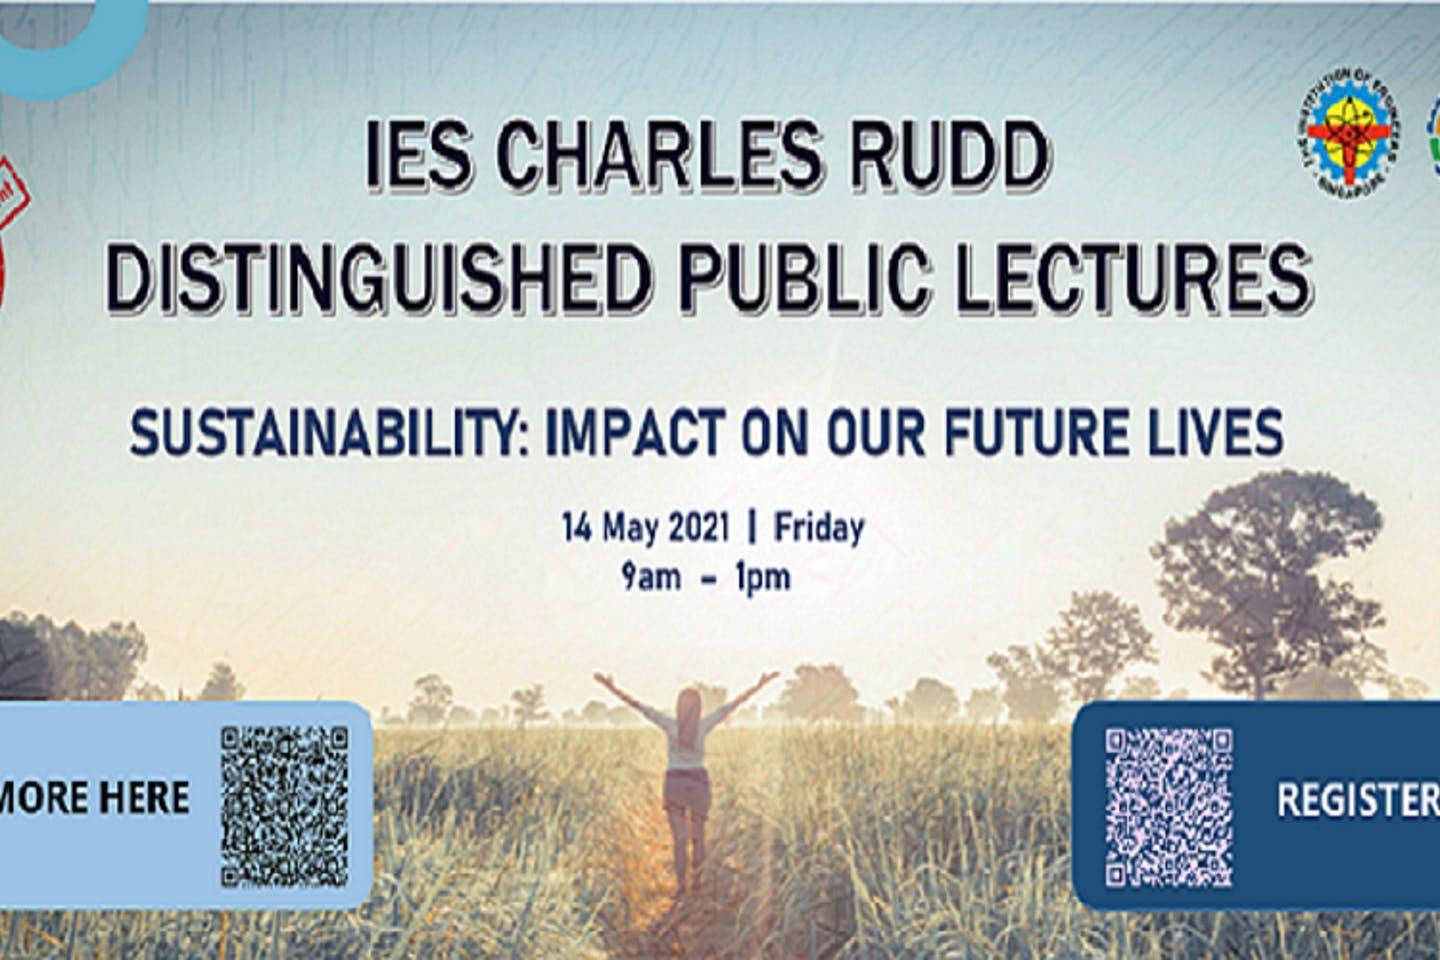 IES Charles Rudd distinguished public lectures 2021 sustainability: Impact on our future lives